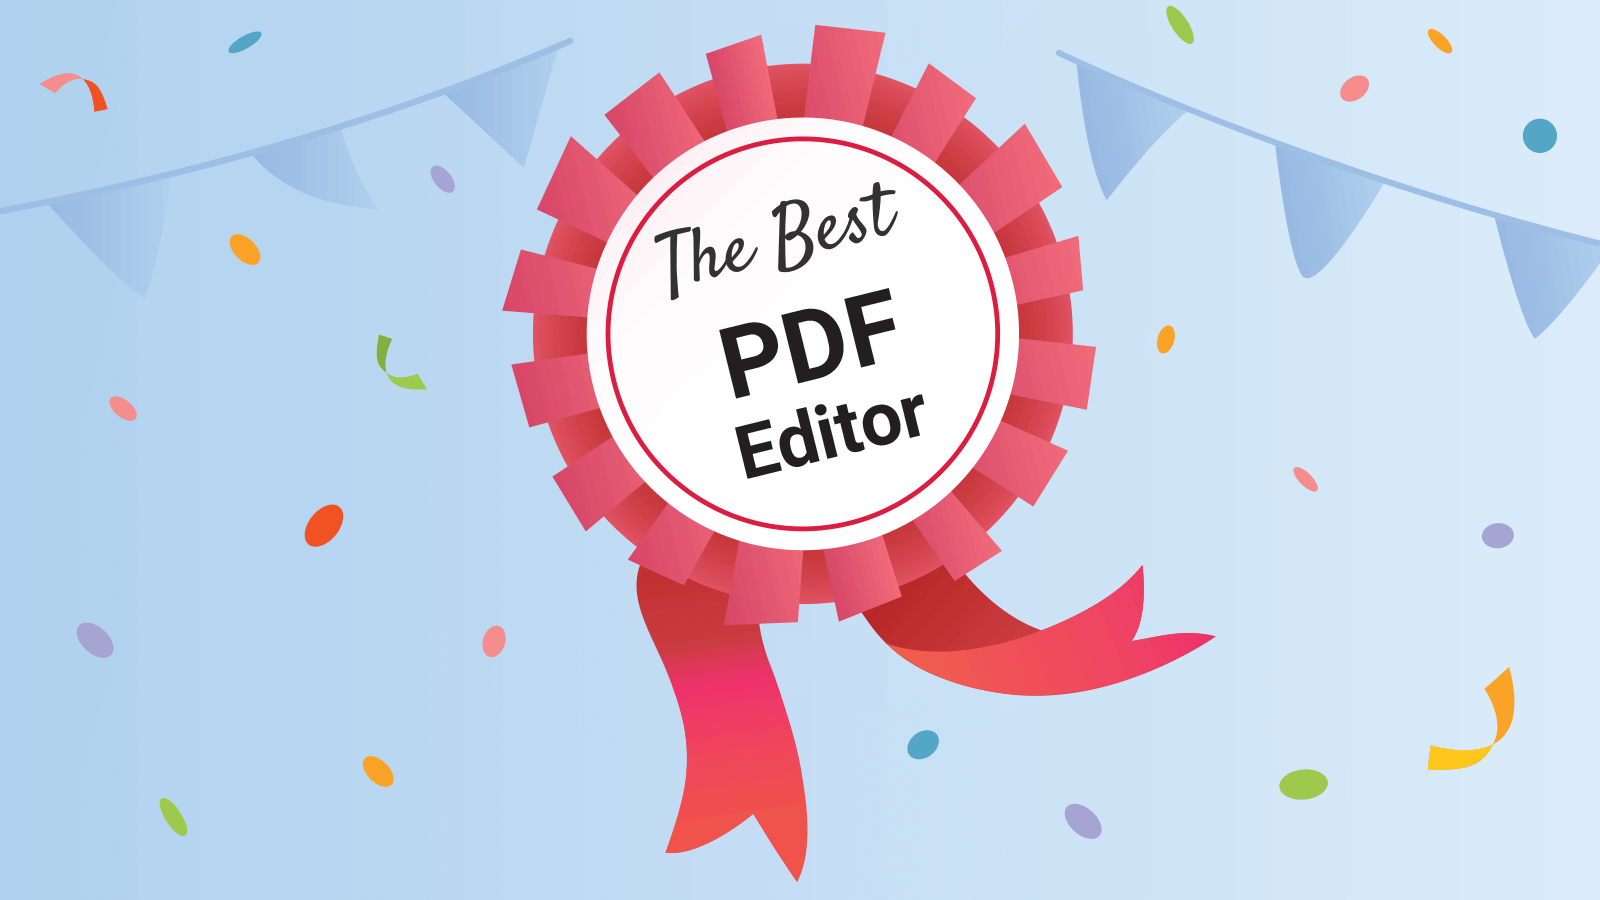 Learn how to make pdf editable with the use of online tools